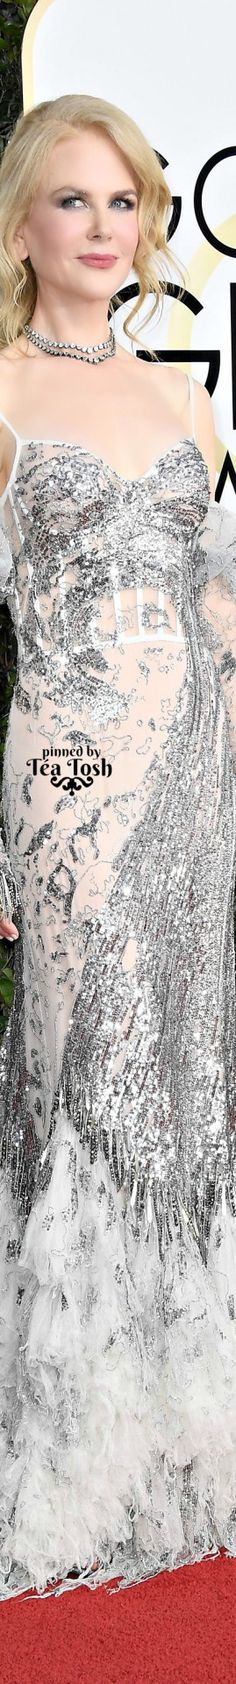 ❇Téa Tosh❇ Nicole Kidman, wearing an Alexander McQueen dress with Fred Leighton jewels and Stuart Weitzman shoes.